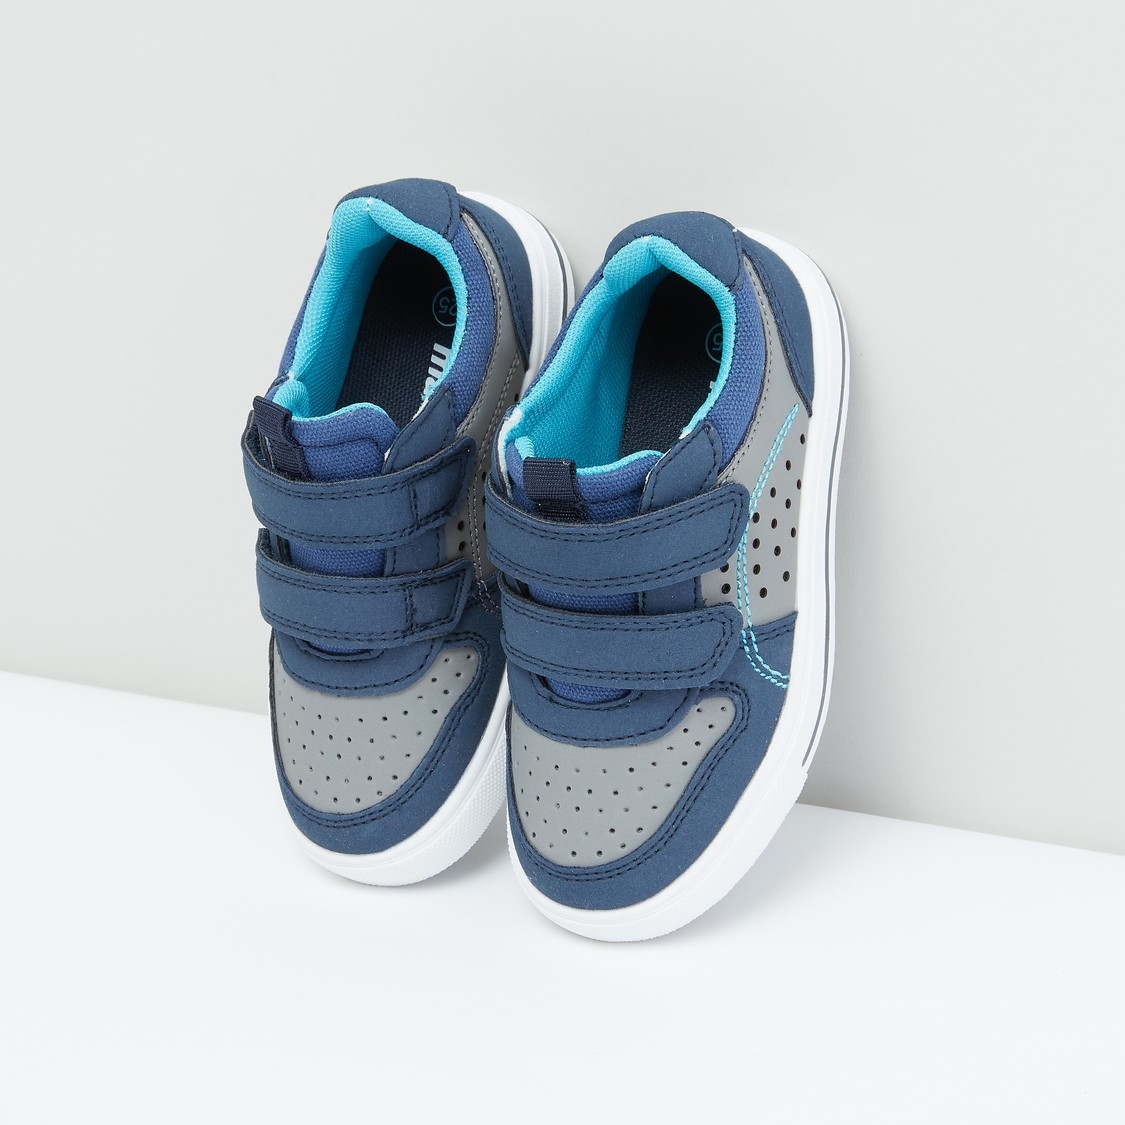 Perforated Sports Shoes with Hook and Loop Closure